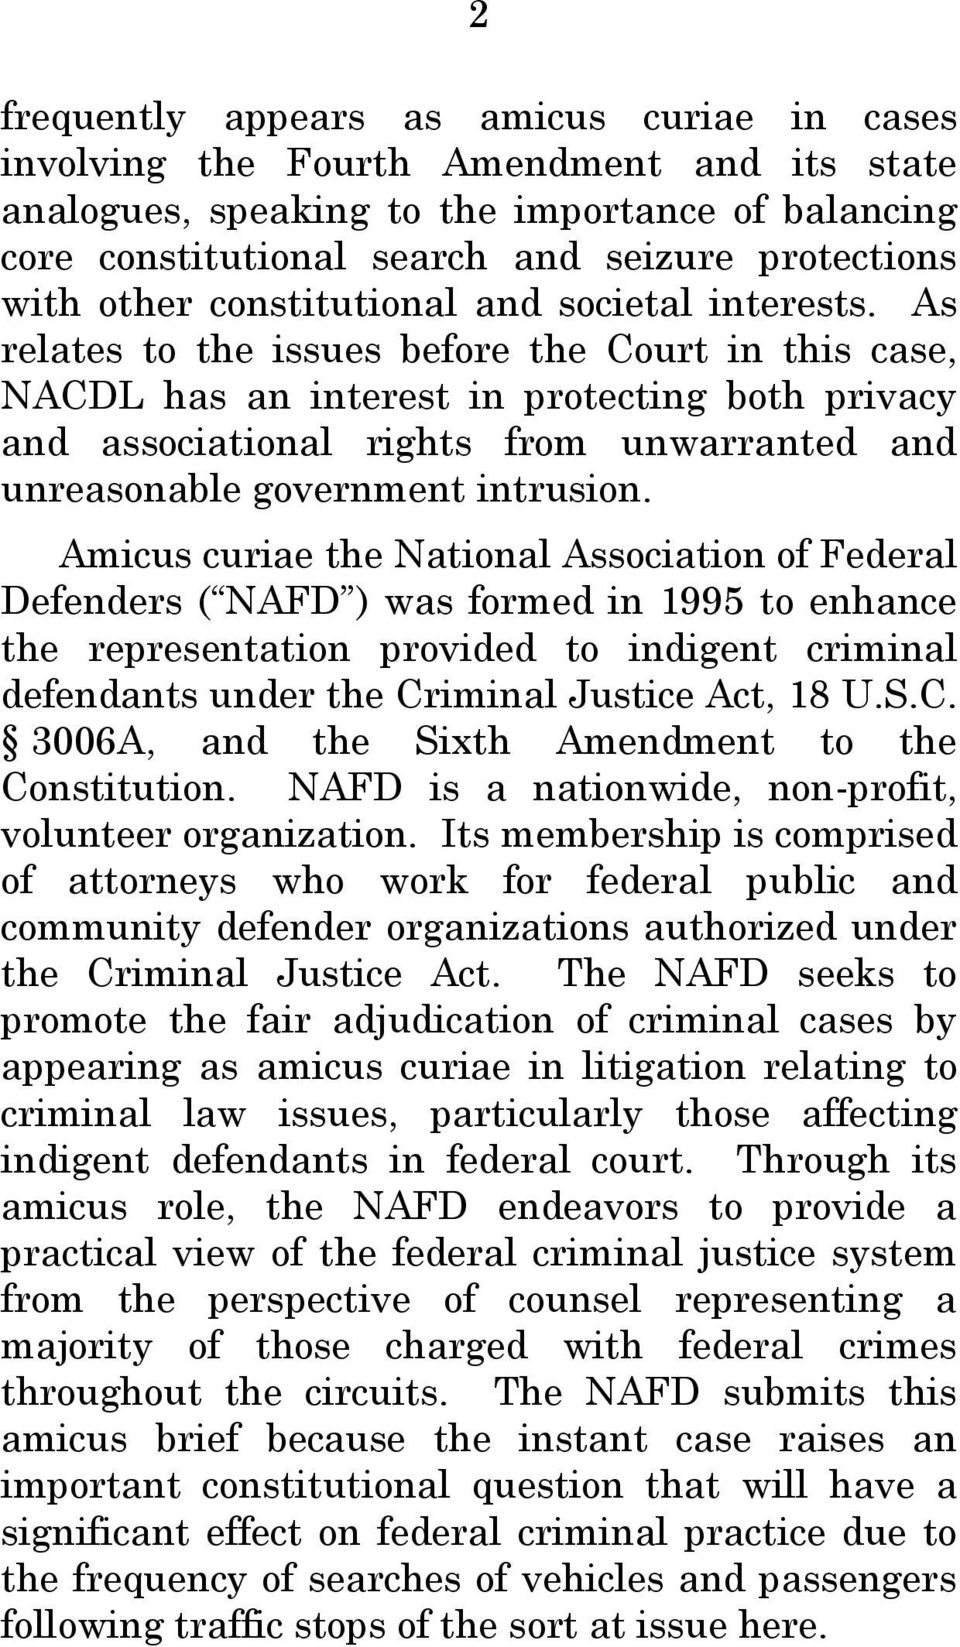 As relates to the issues before the Court in this case, NACDL has an interest in protecting both privacy and associational rights from unwarranted and unreasonable government intrusion.